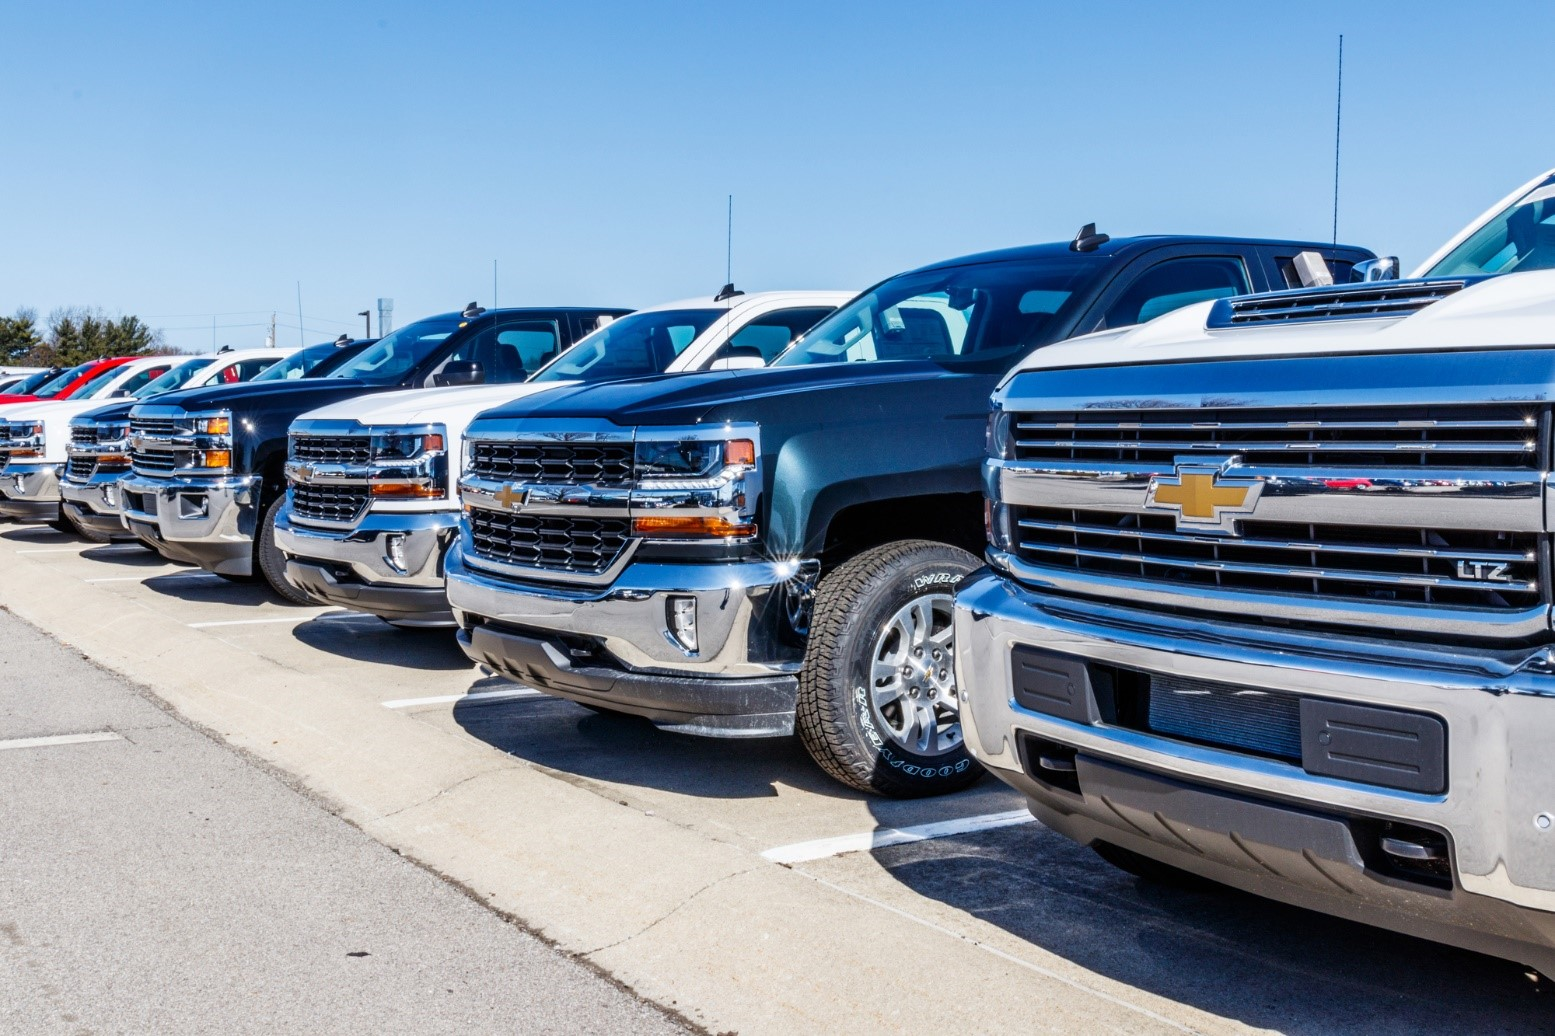 Newberg Chevrolet Is A Newberg Chevrolet Dealer And A New Car And Used Car Newberg Or Chevrolet Dealership